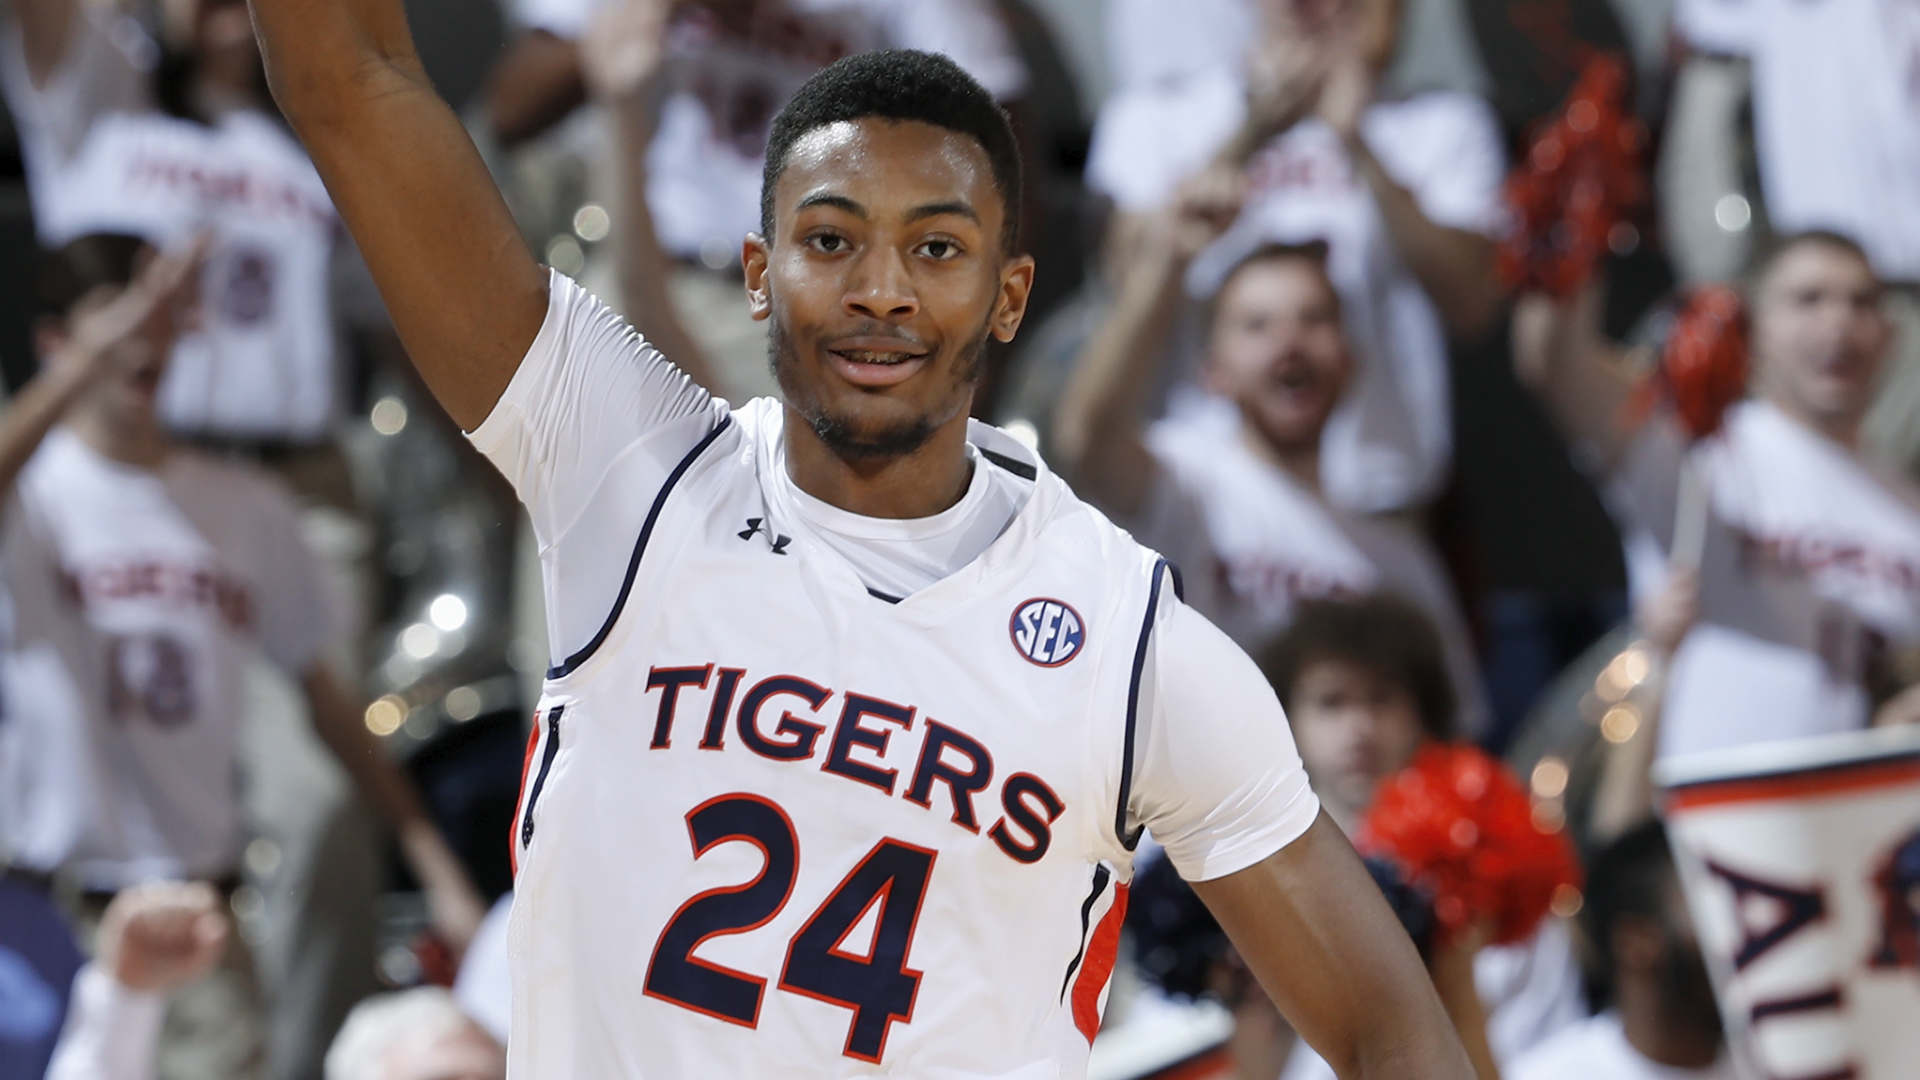 Auburn forward McLeMore suffers gruesome dislocated ankle injury